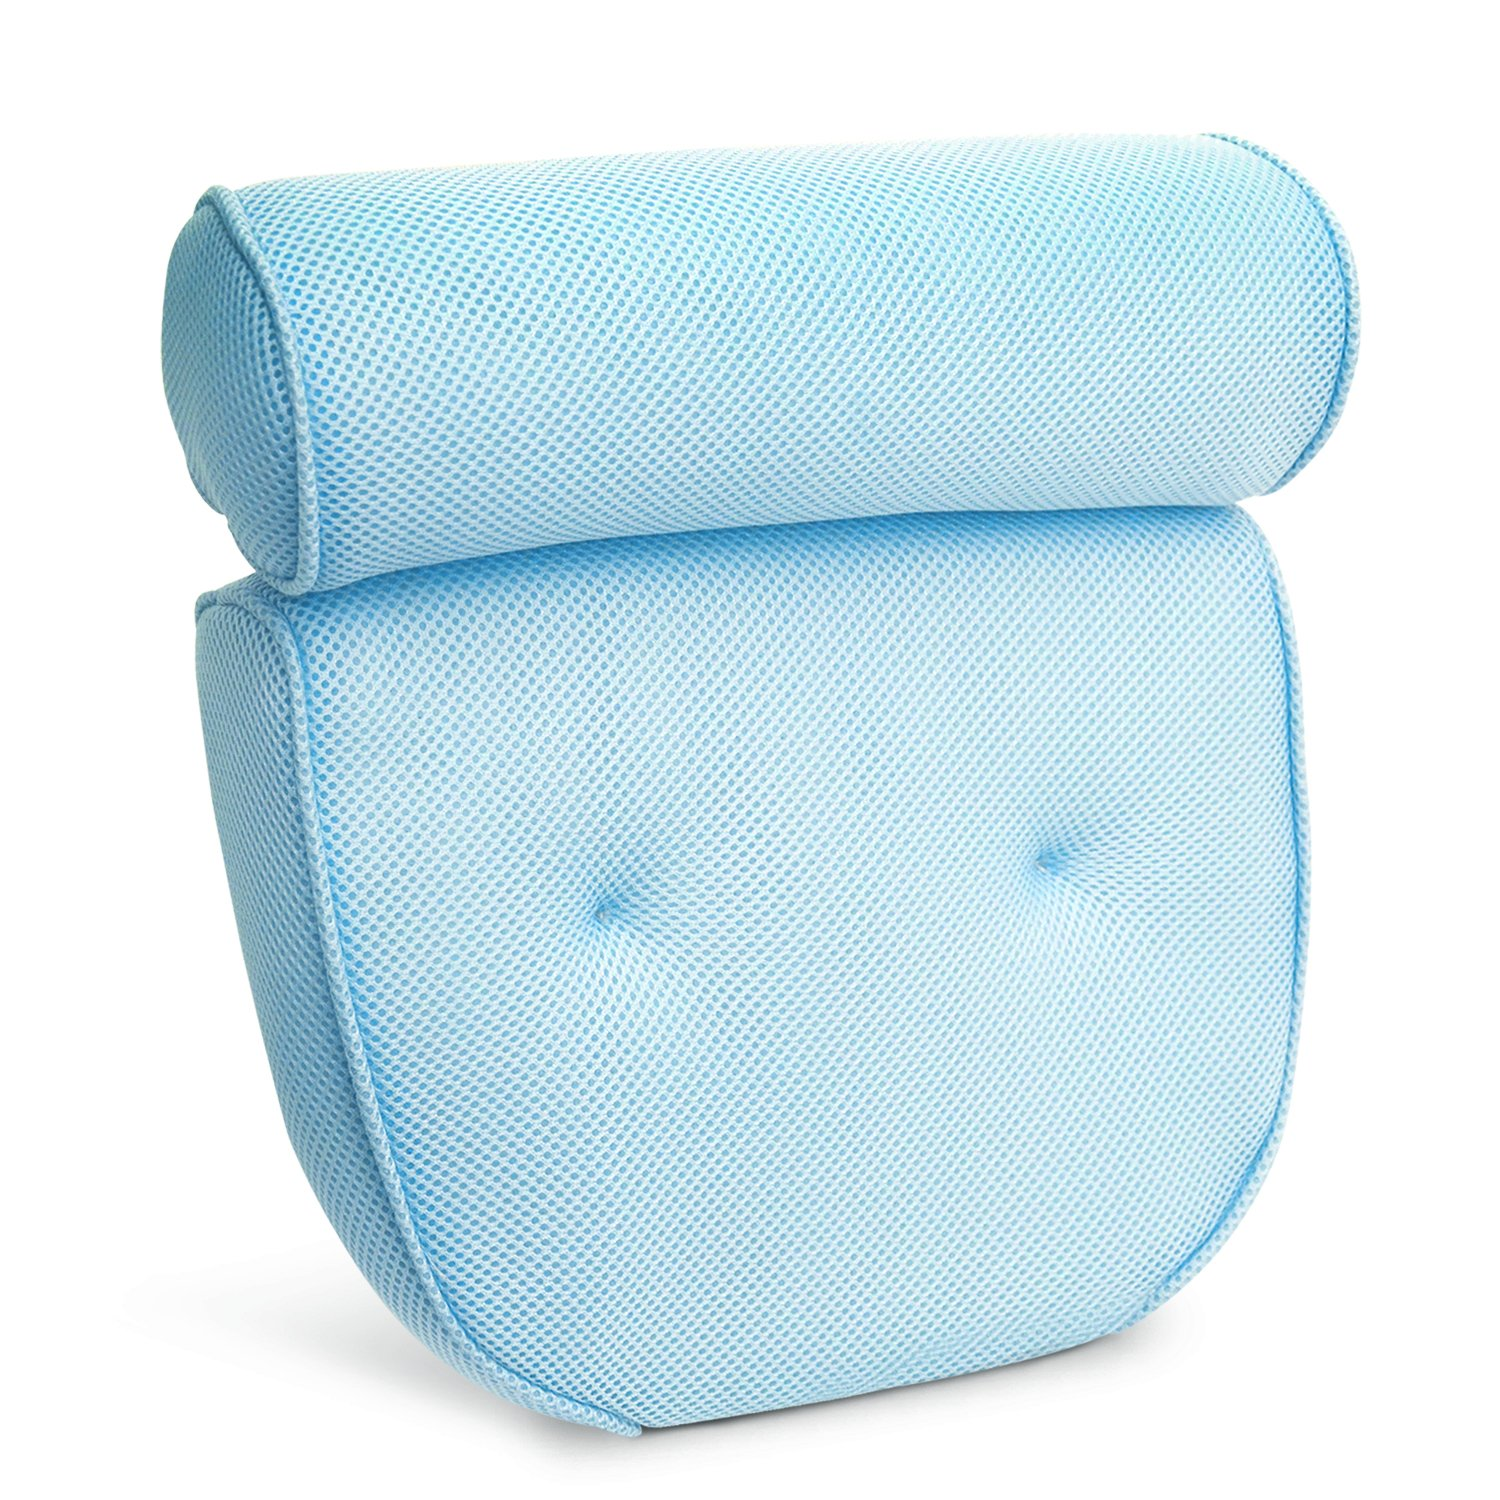 North American Healthcare Ideaworks 5D Home Spa Bath Pillow